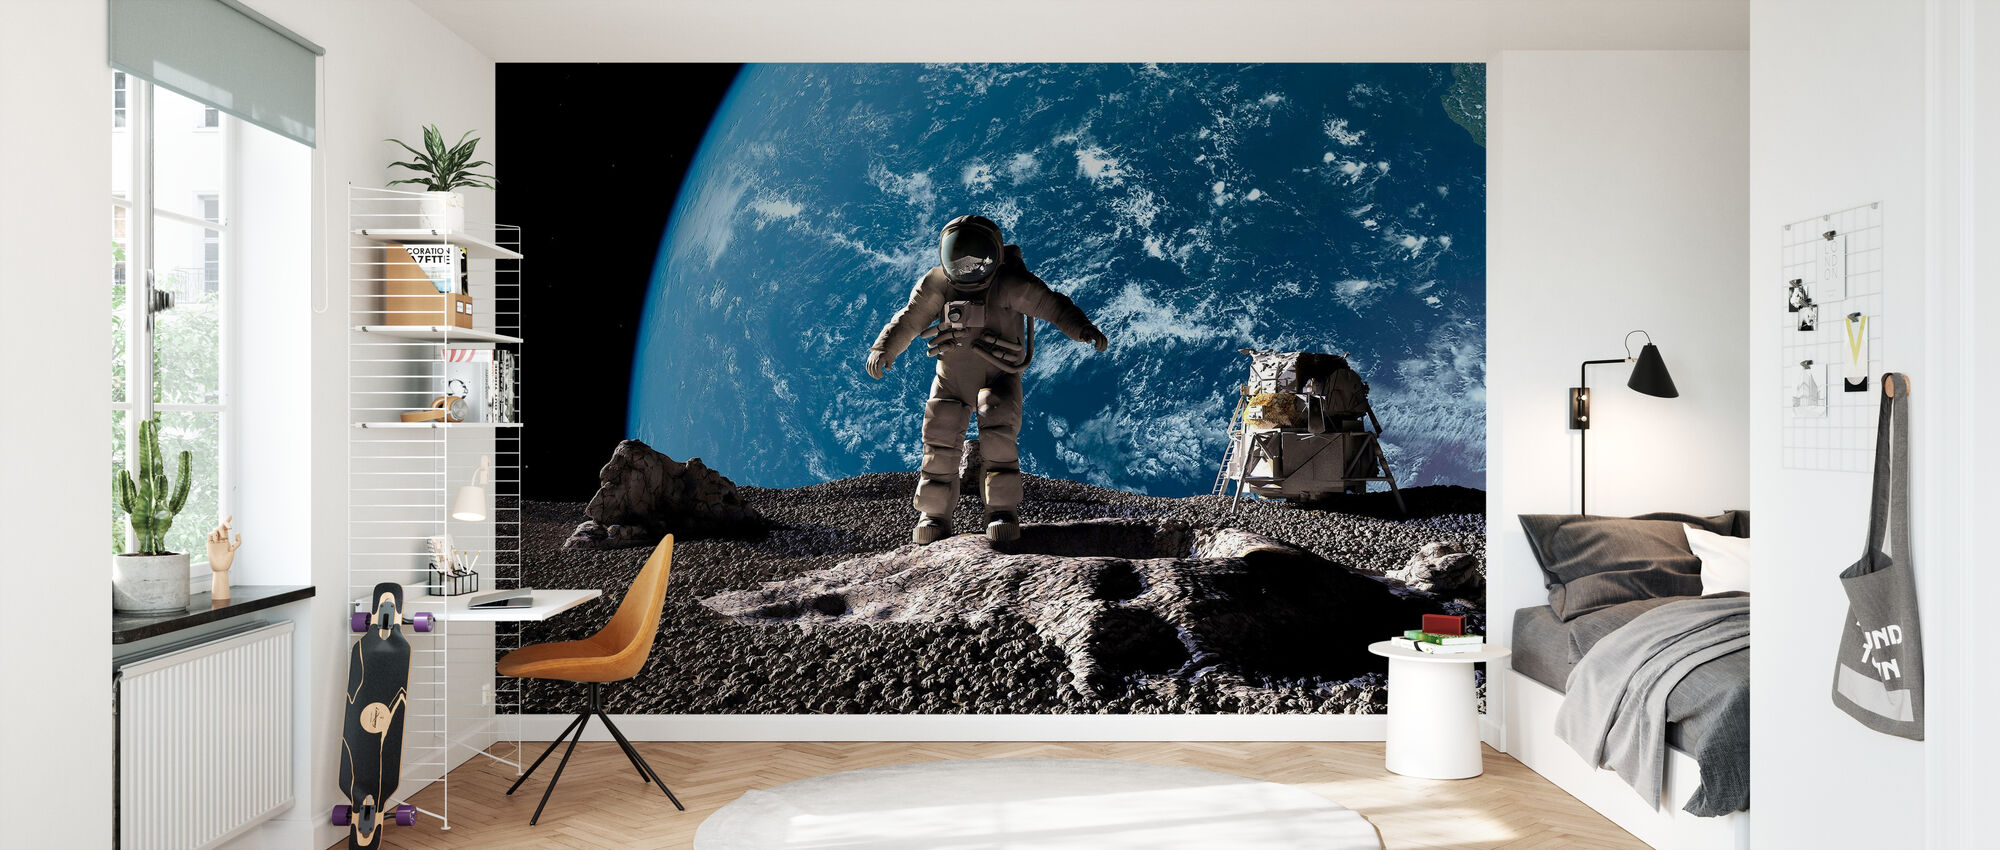 Astronaut with Earth in Background - Wallpaper - Kids Room